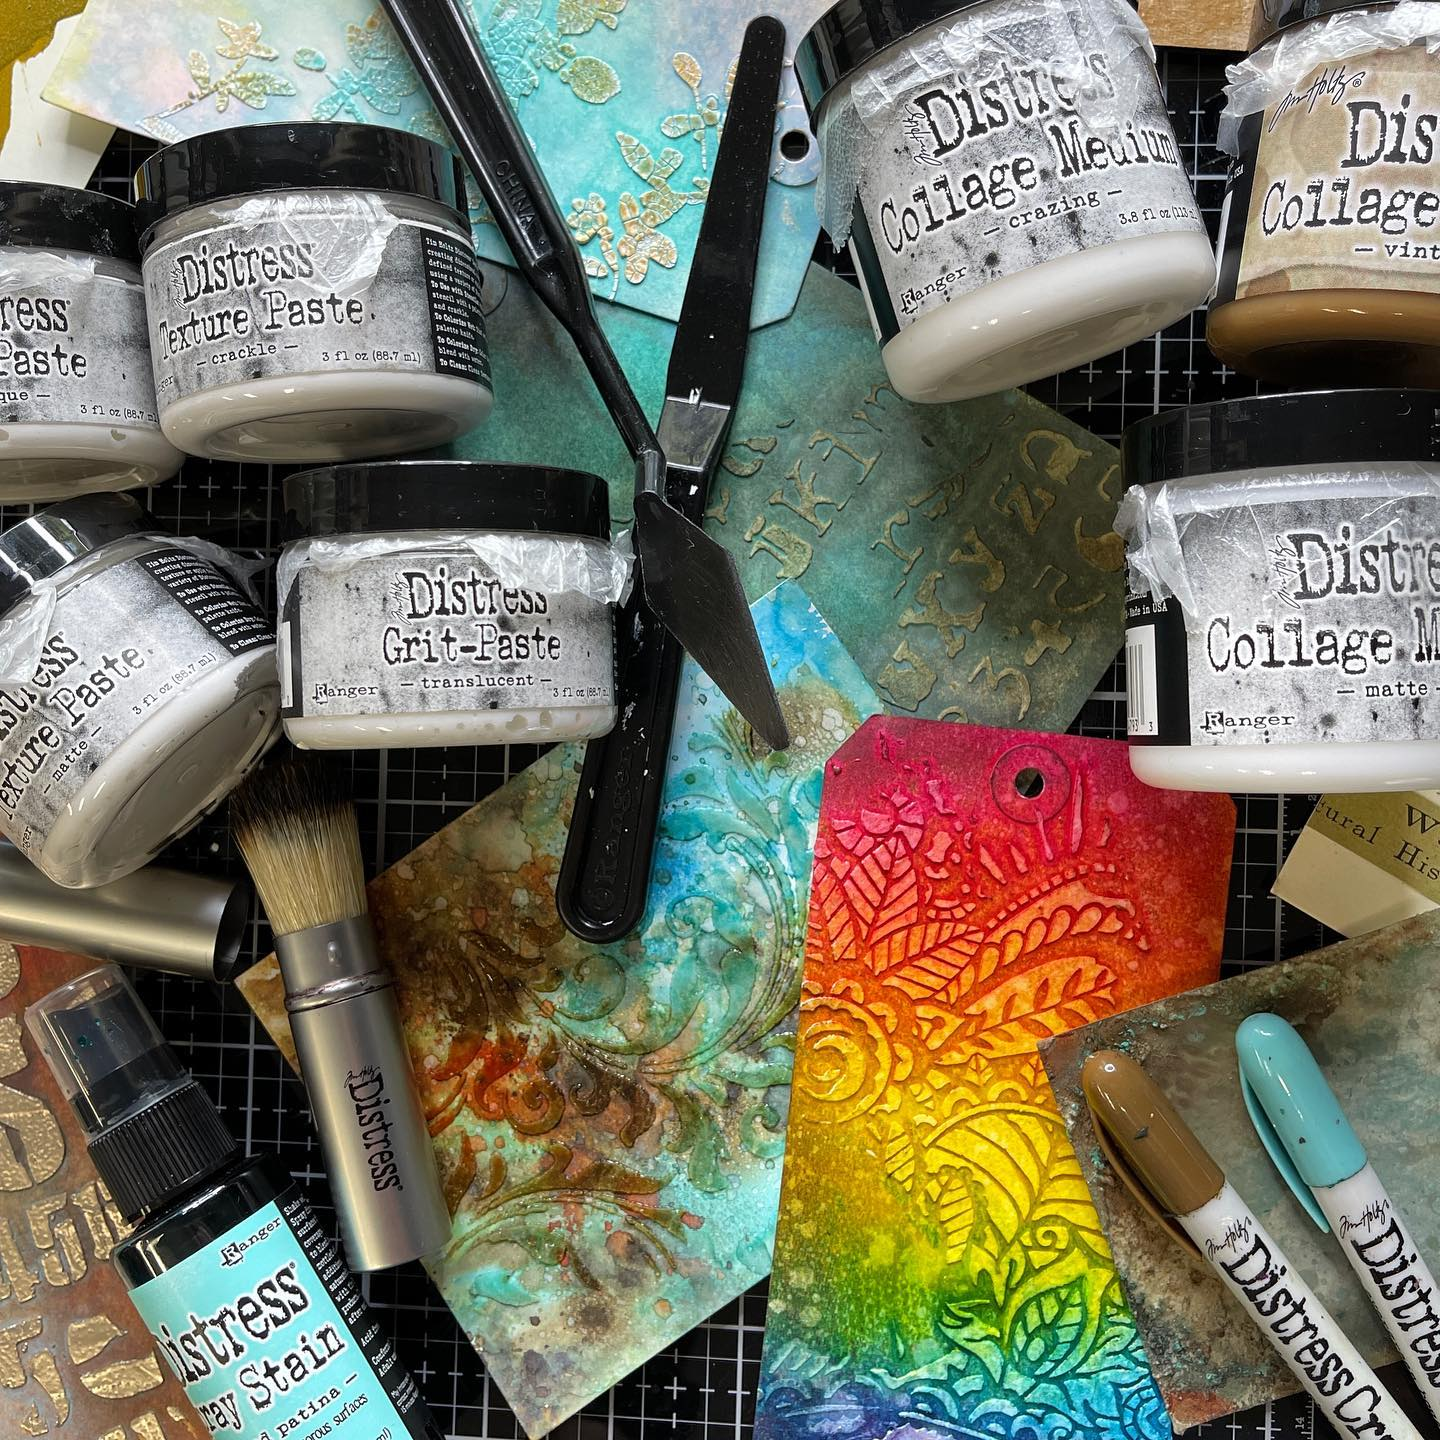 Tim Holtz - Distress Mediums & Brushes